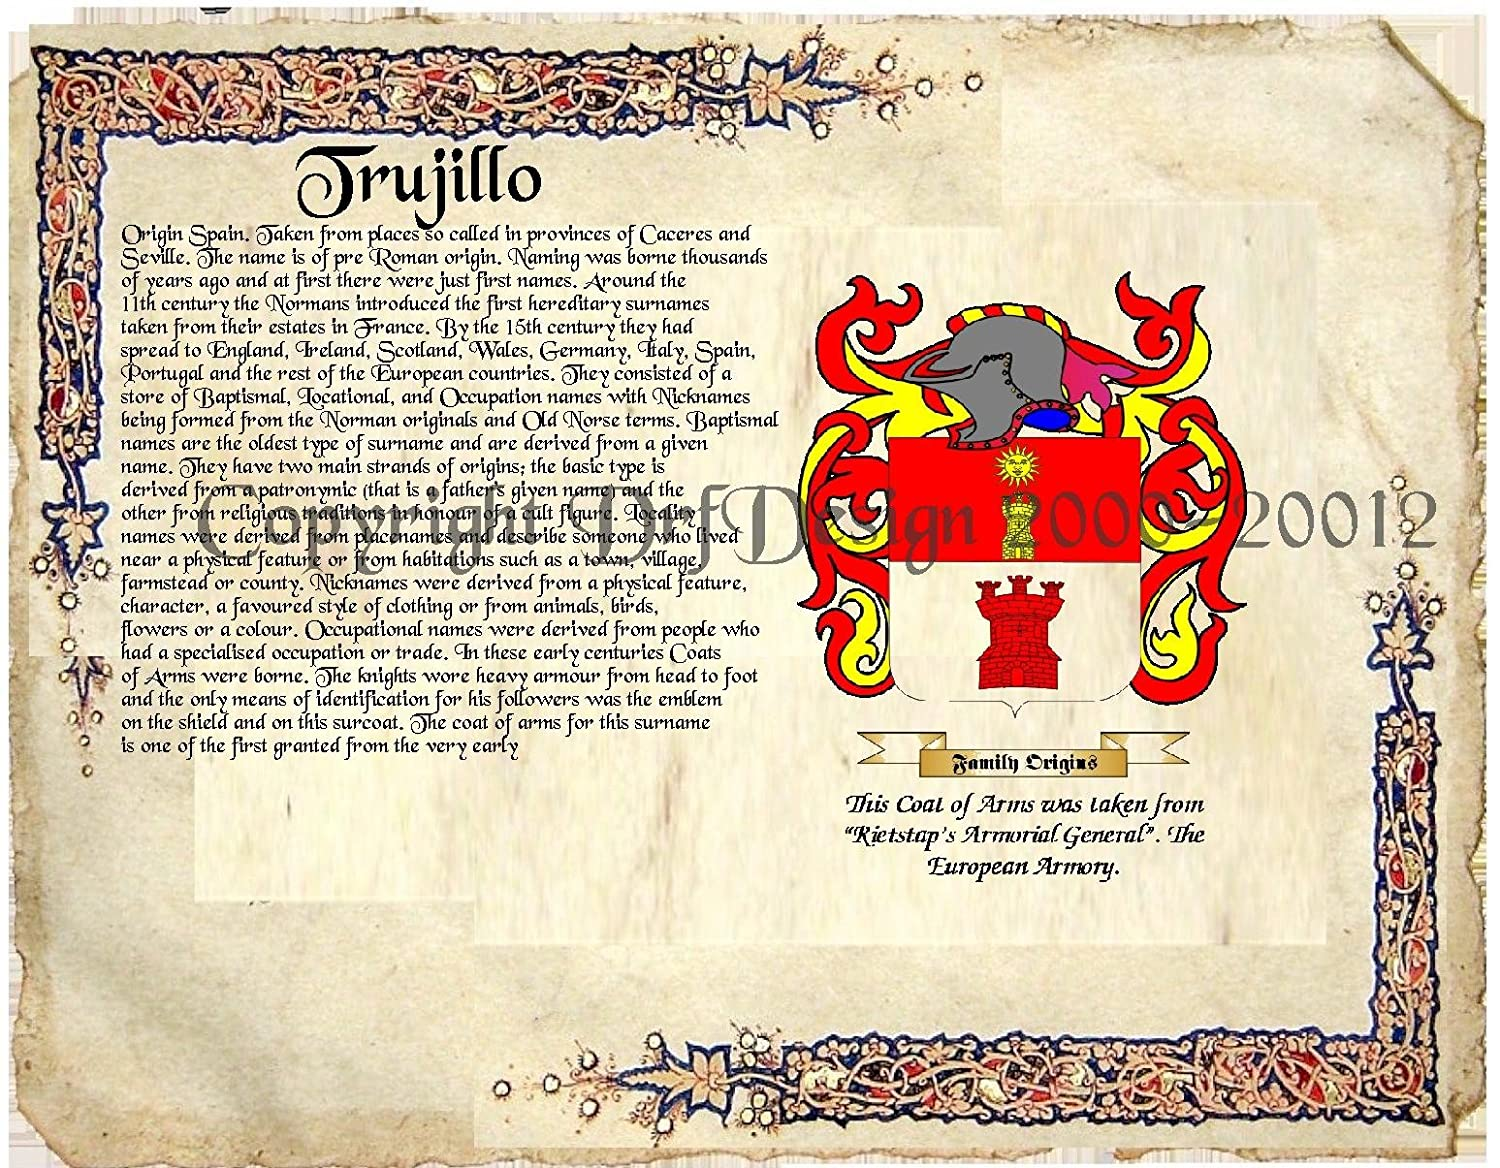 Amazon trujillo coat of arms family crest on fine paper and amazon trujillo coat of arms family crest on fine paper and family history buy 1 get 1 free picture posters prints buycottarizona Image collections